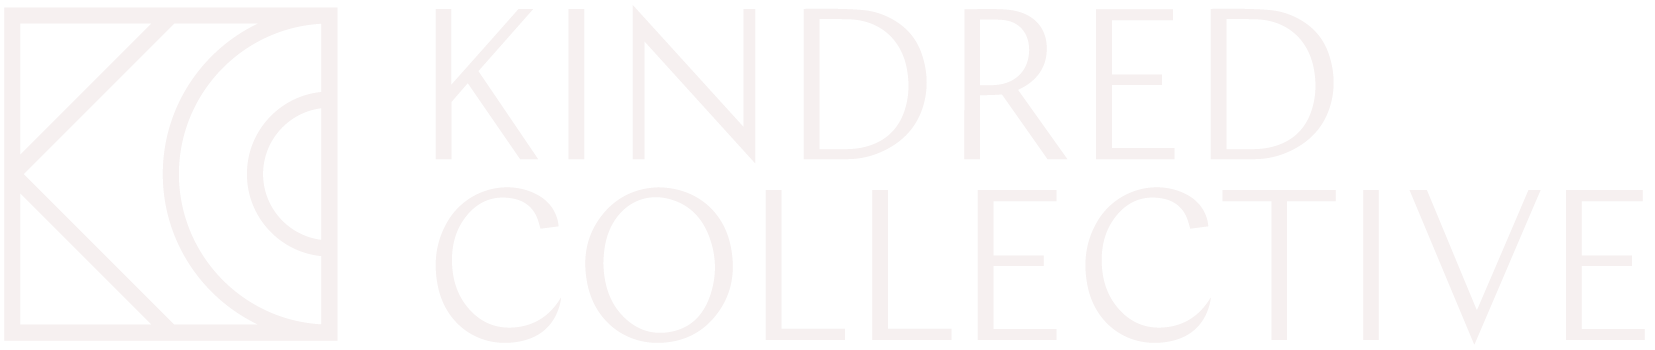 kindred_collective_wordmark-04-white.png